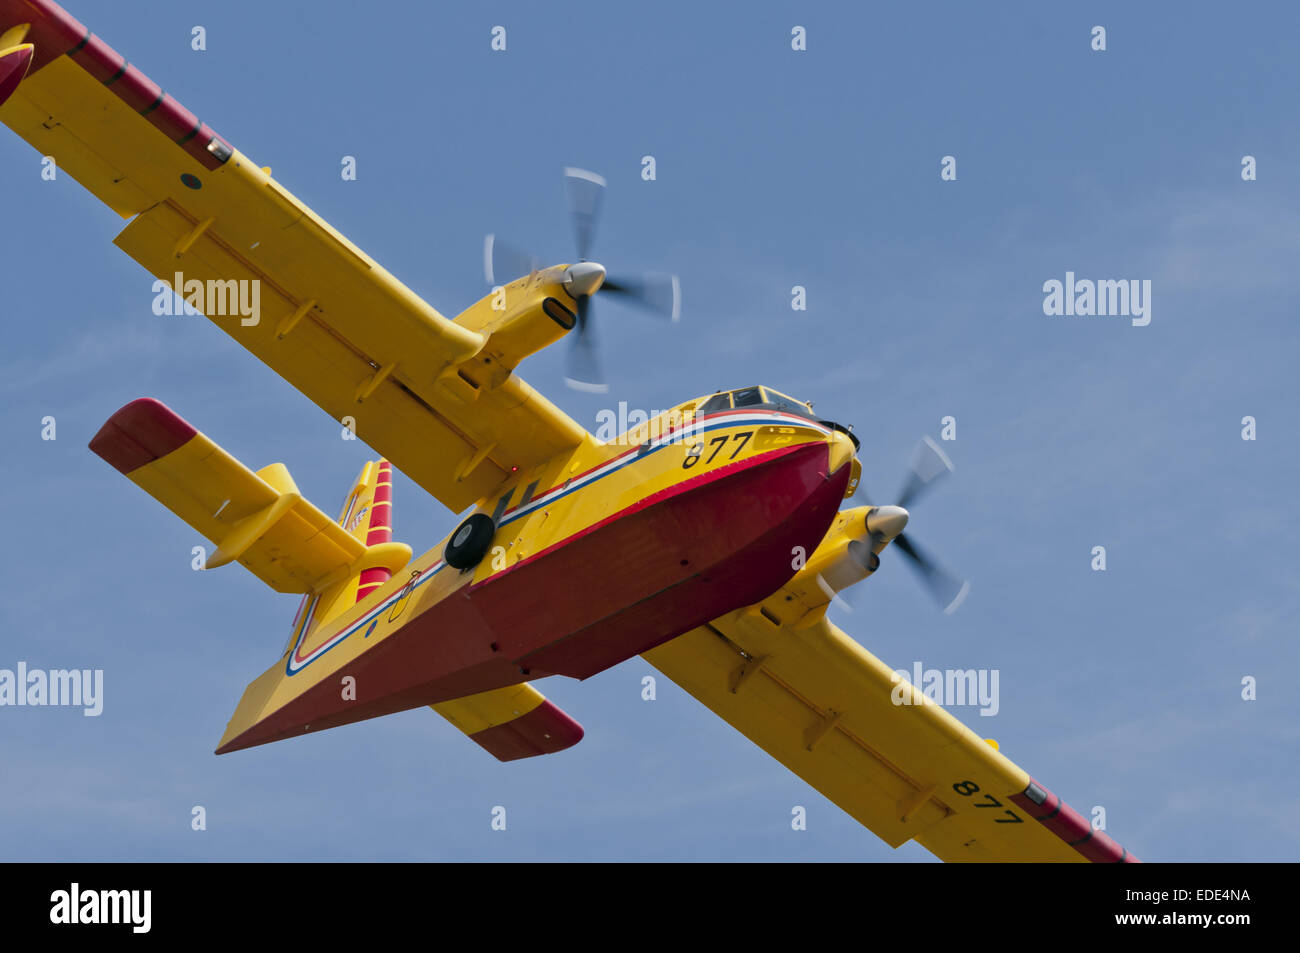 canadair cl-415, firefighting aircraft in flight in croatia - Stock Image